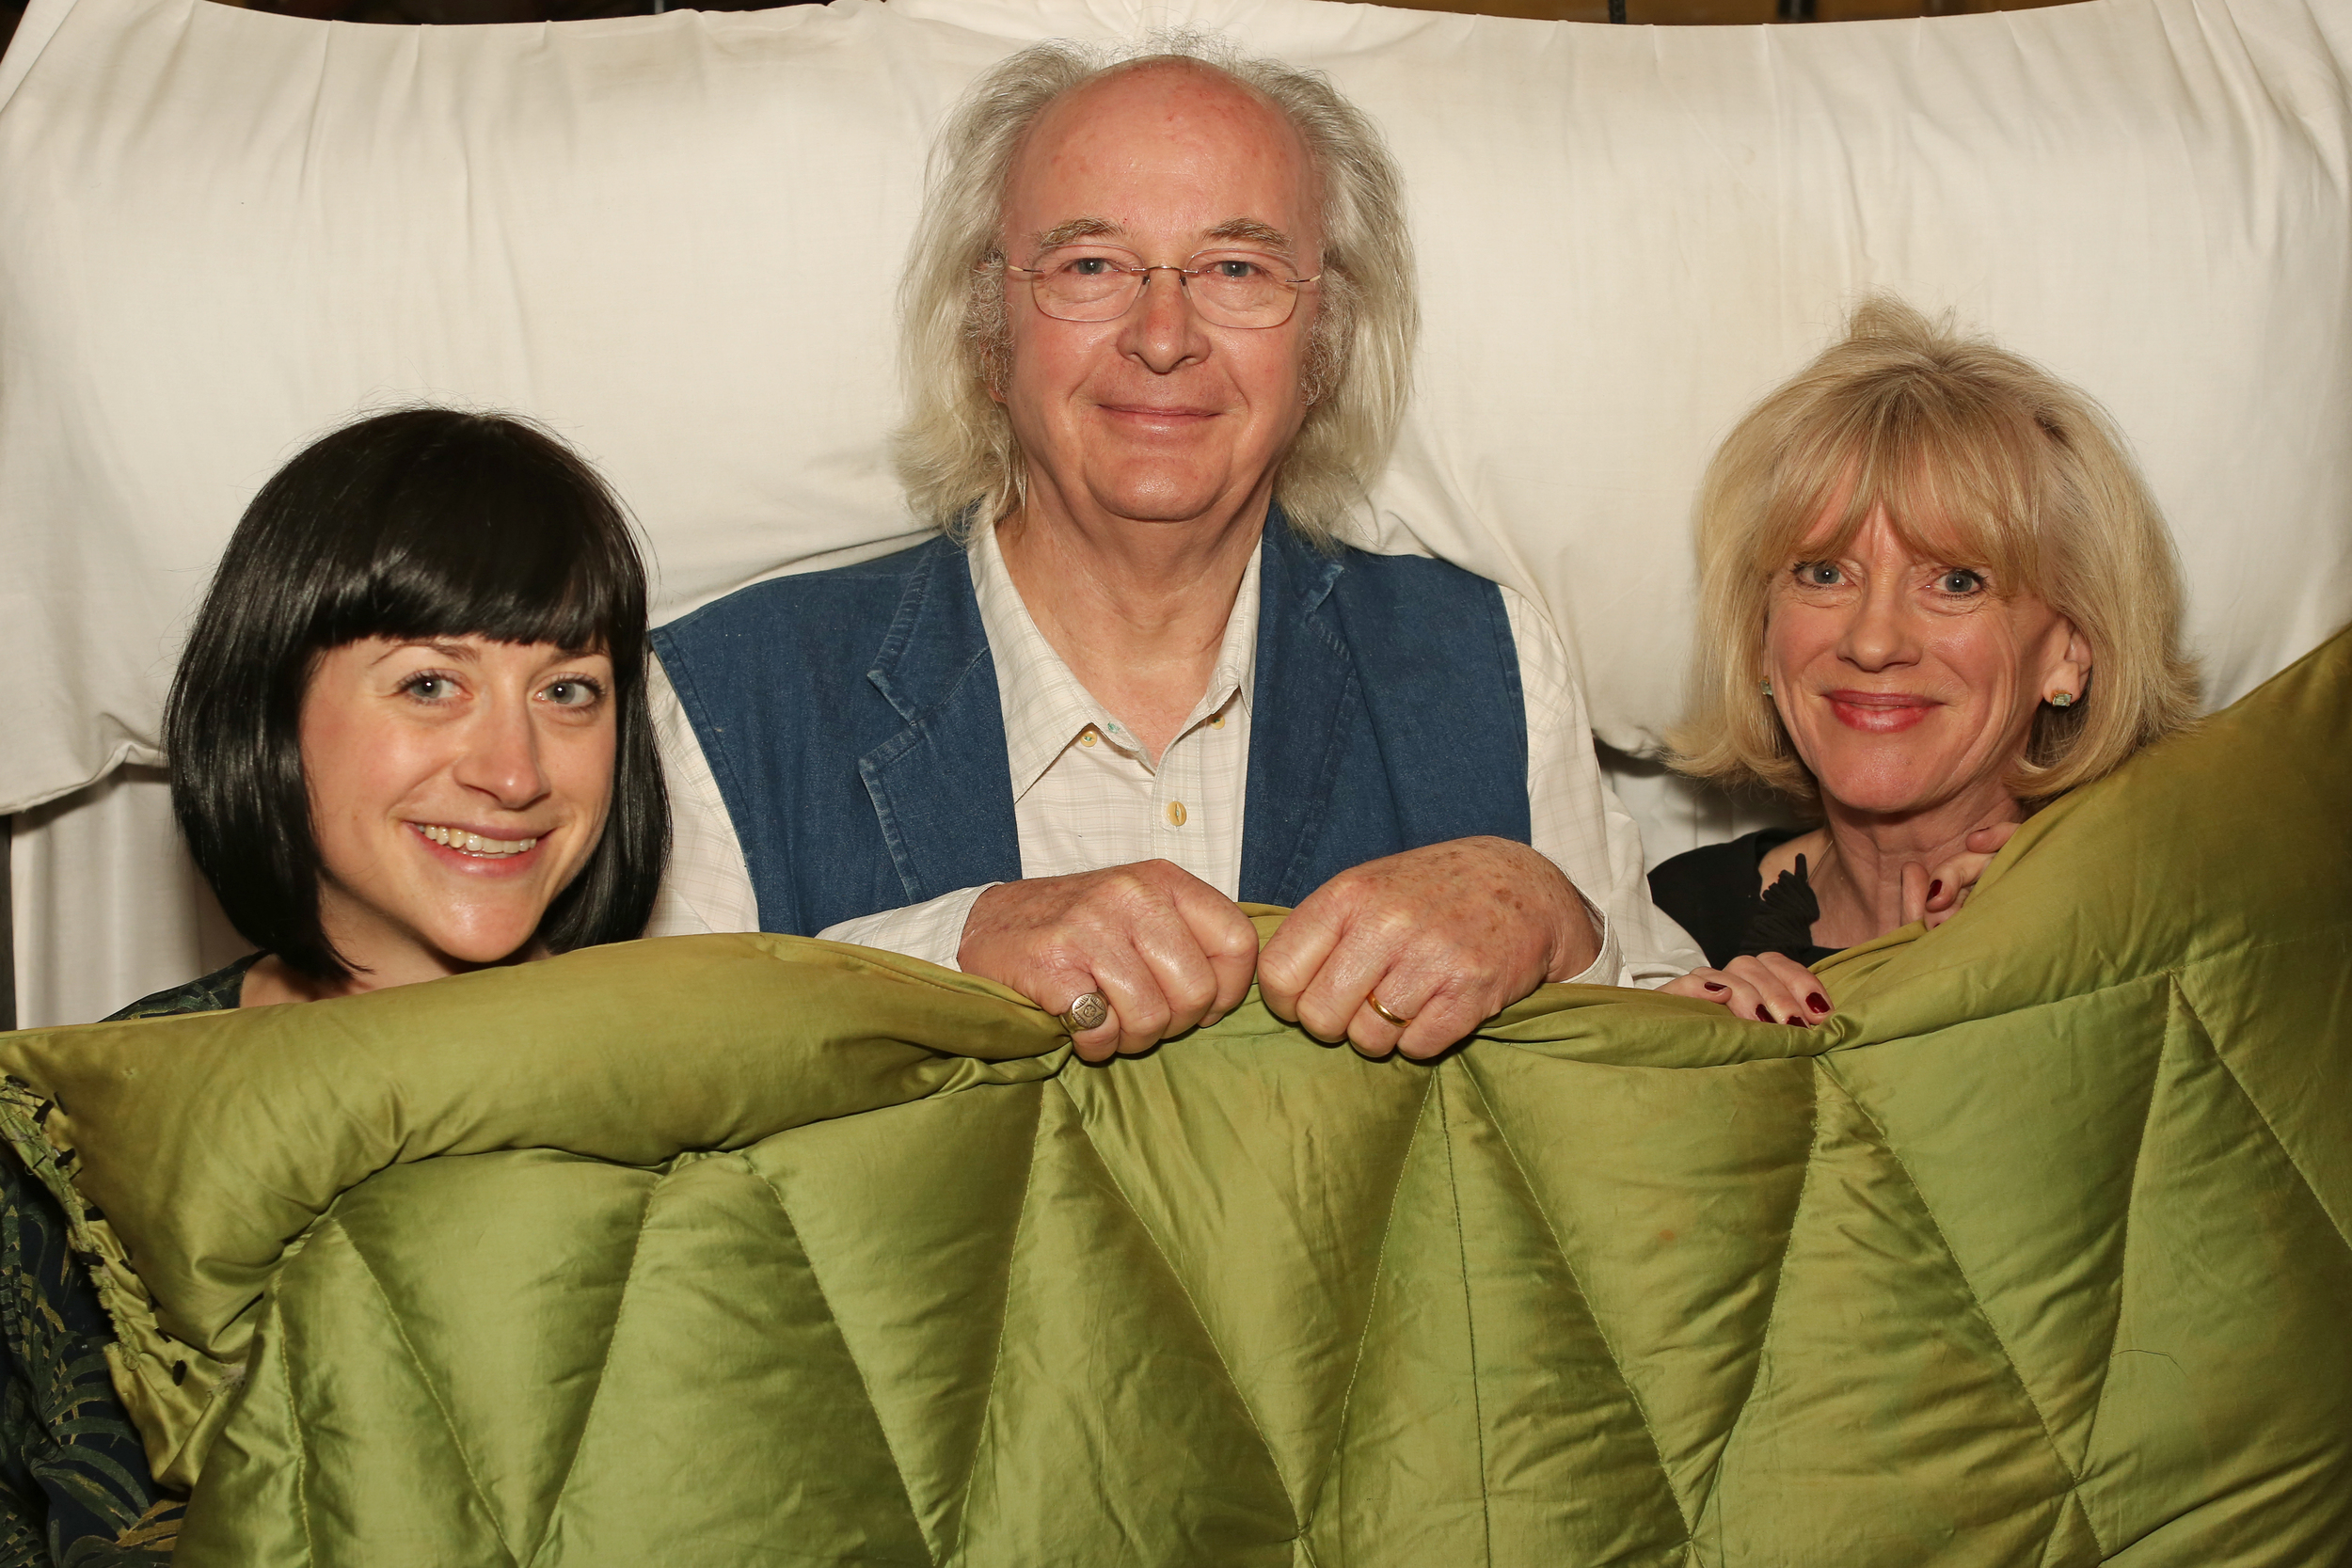 Cat Botibol (Exec Producer), Philip Pullman (Author) & Val Coward (Producer)